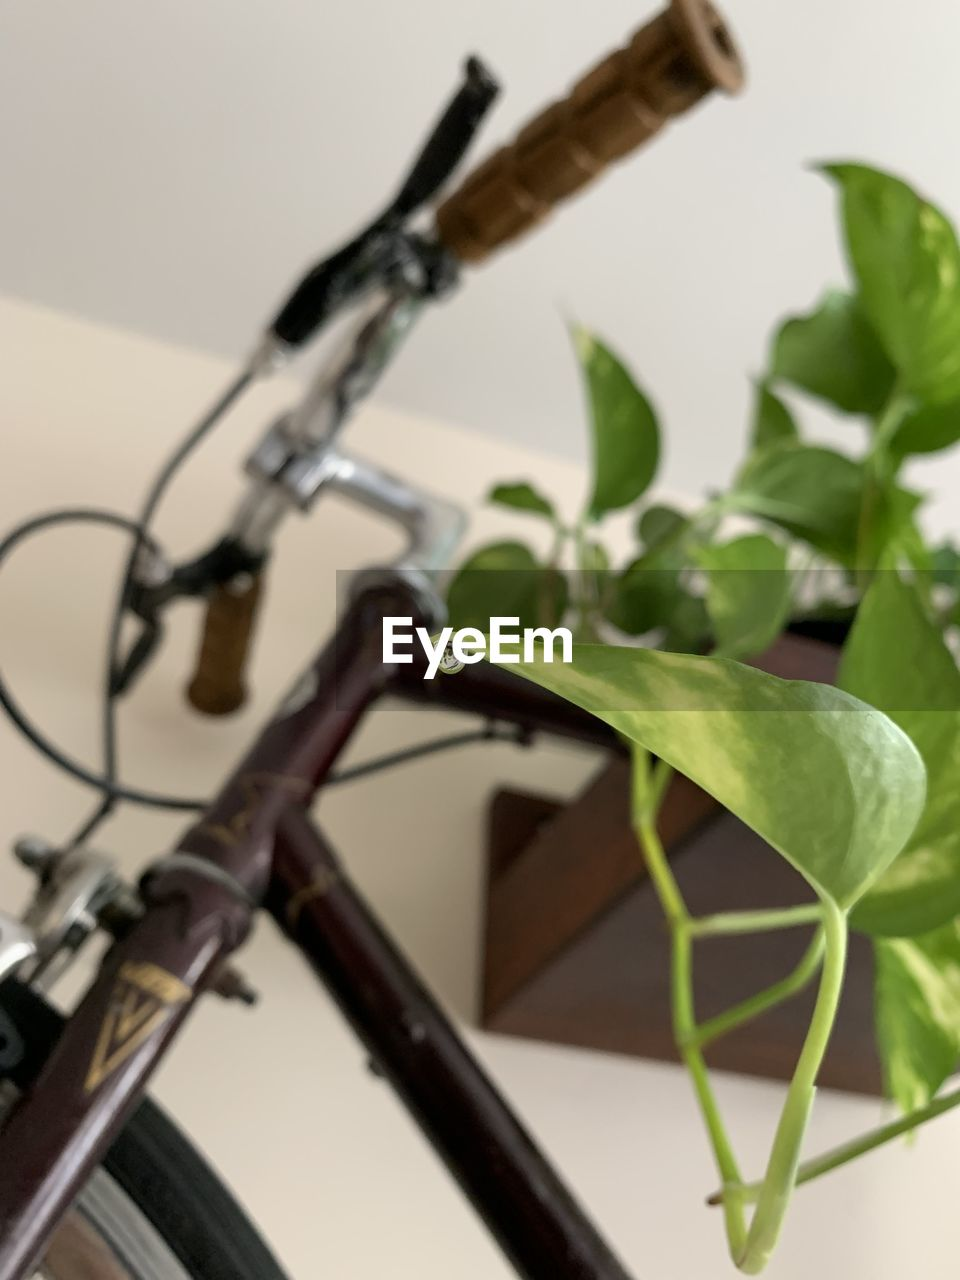 leaf, plant part, no people, close-up, plant, focus on foreground, green color, nature, selective focus, metal, growth, wall - building feature, outdoors, day, bicycle, built structure, plant stem, freshness, twig